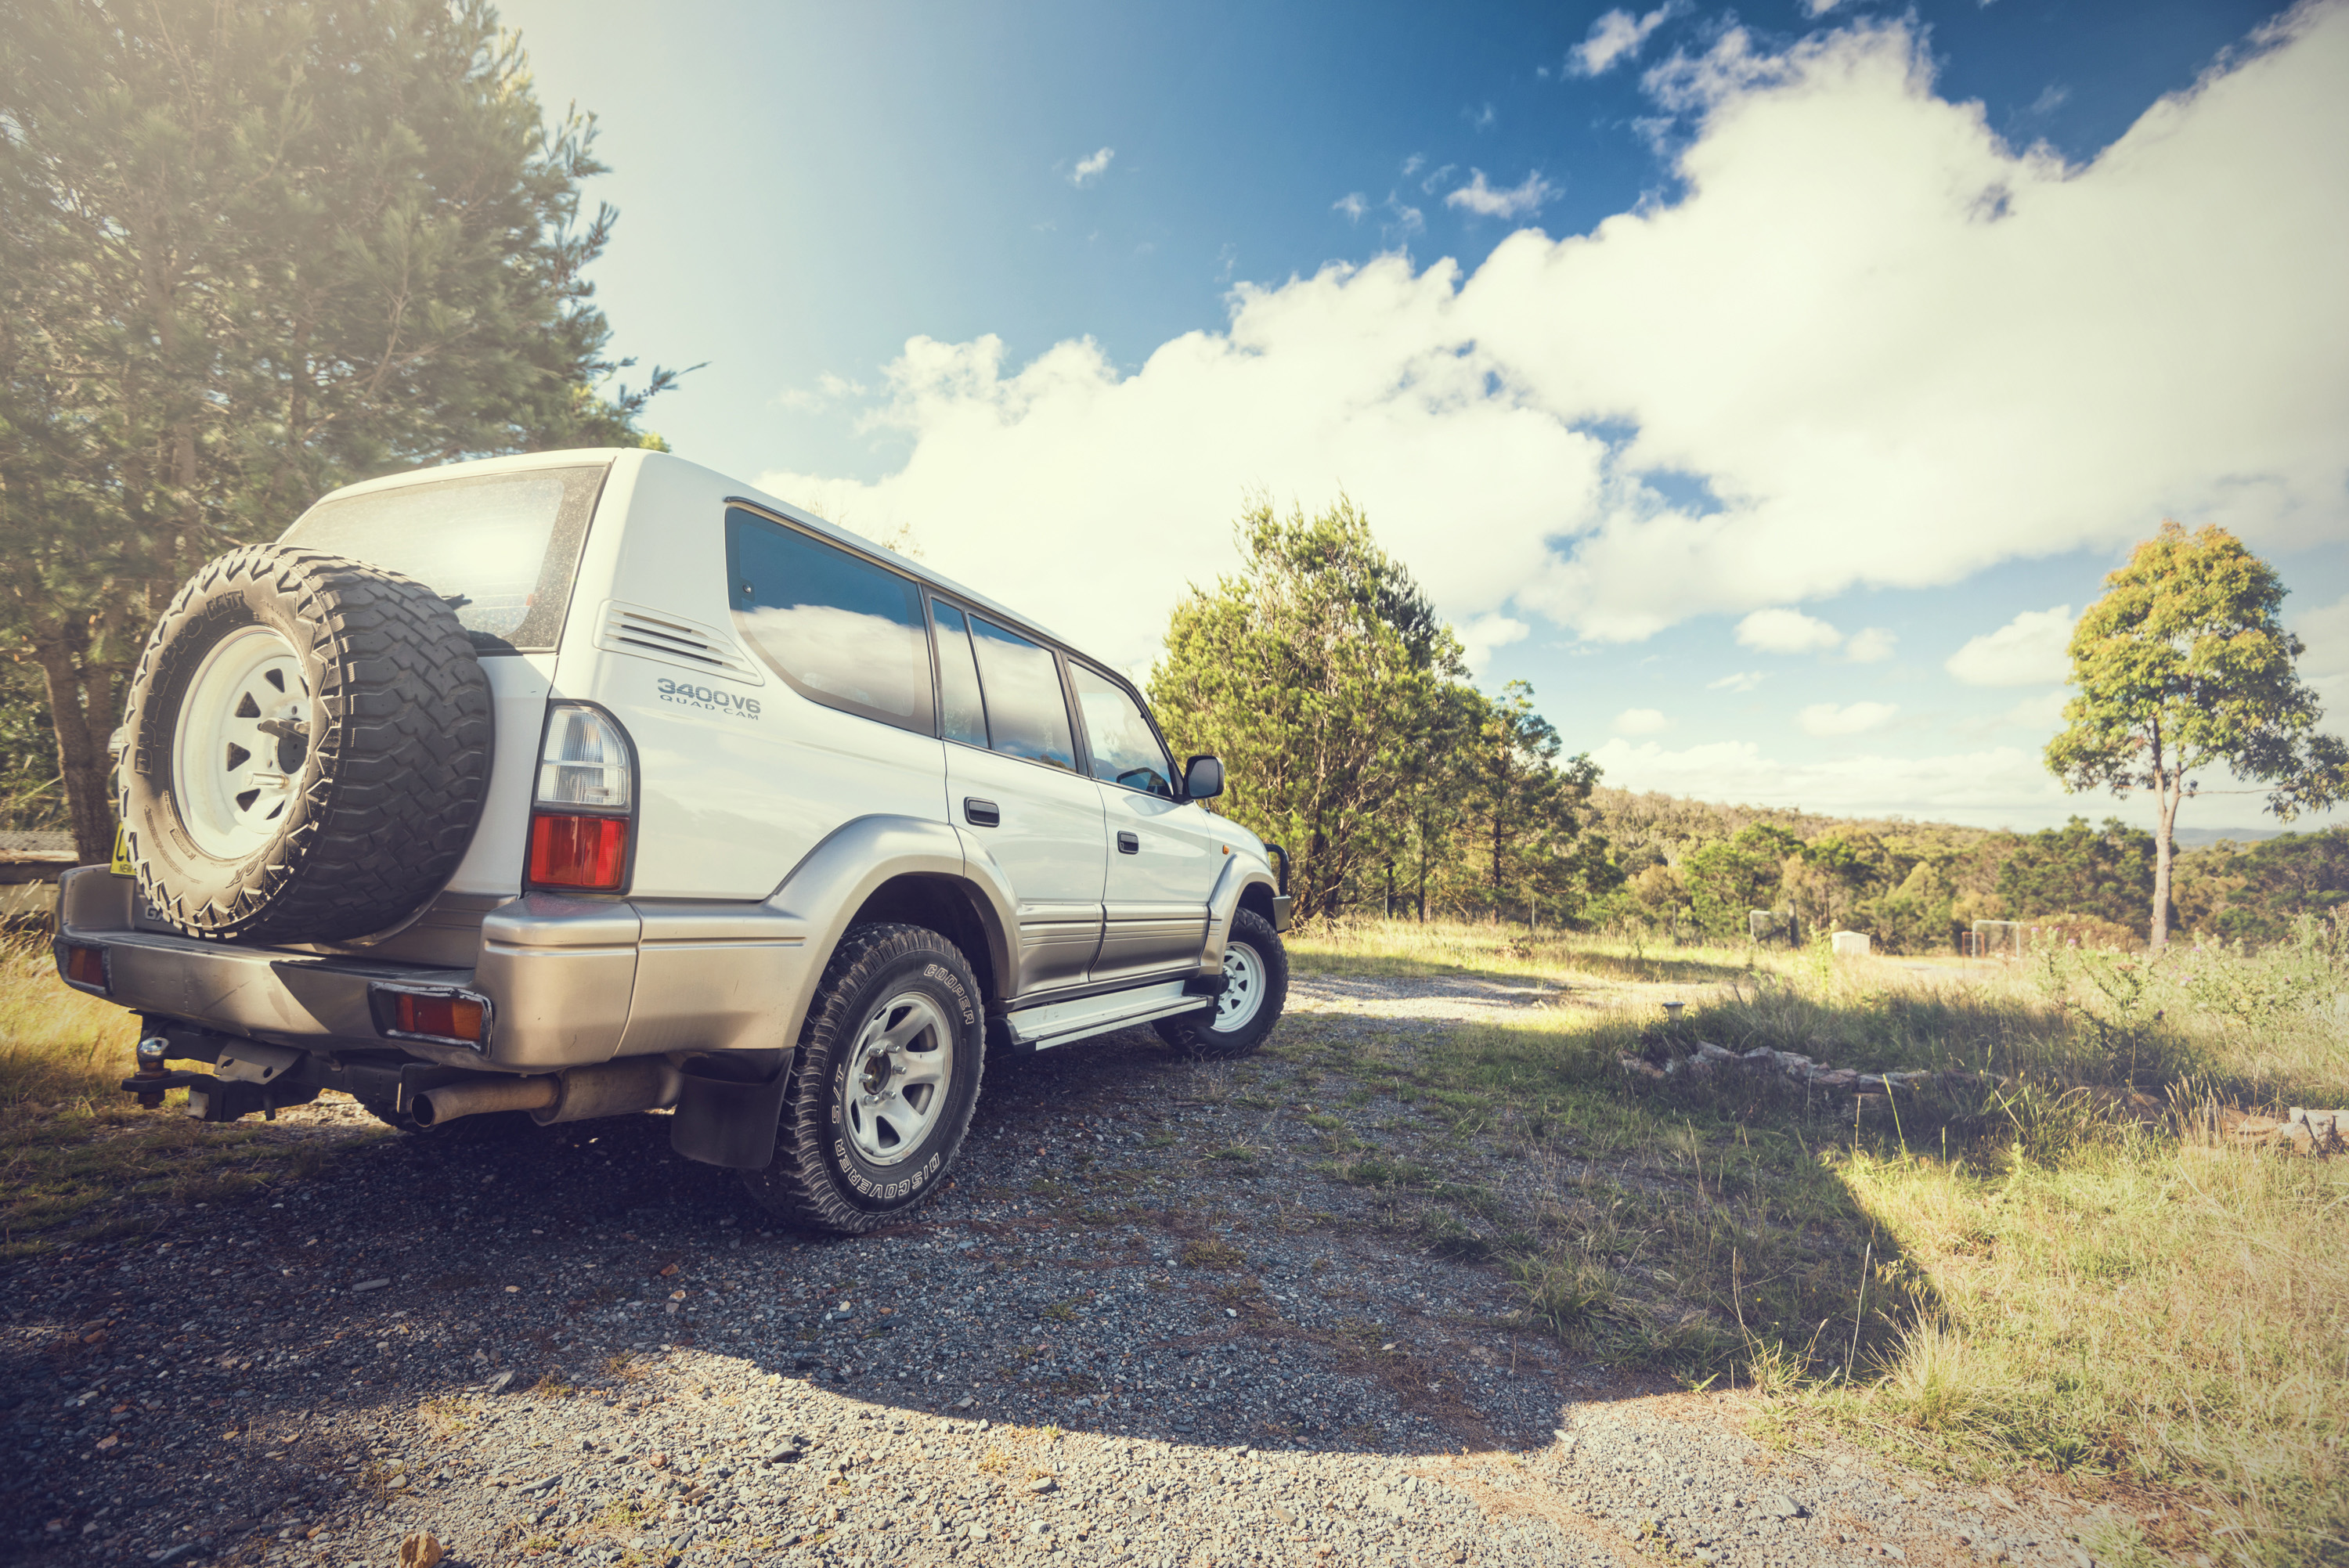 adventure adrenaline the 4wd is the only way to see the real outback… our 4wds are excellent vehicles for couples or friends with all the reliability of